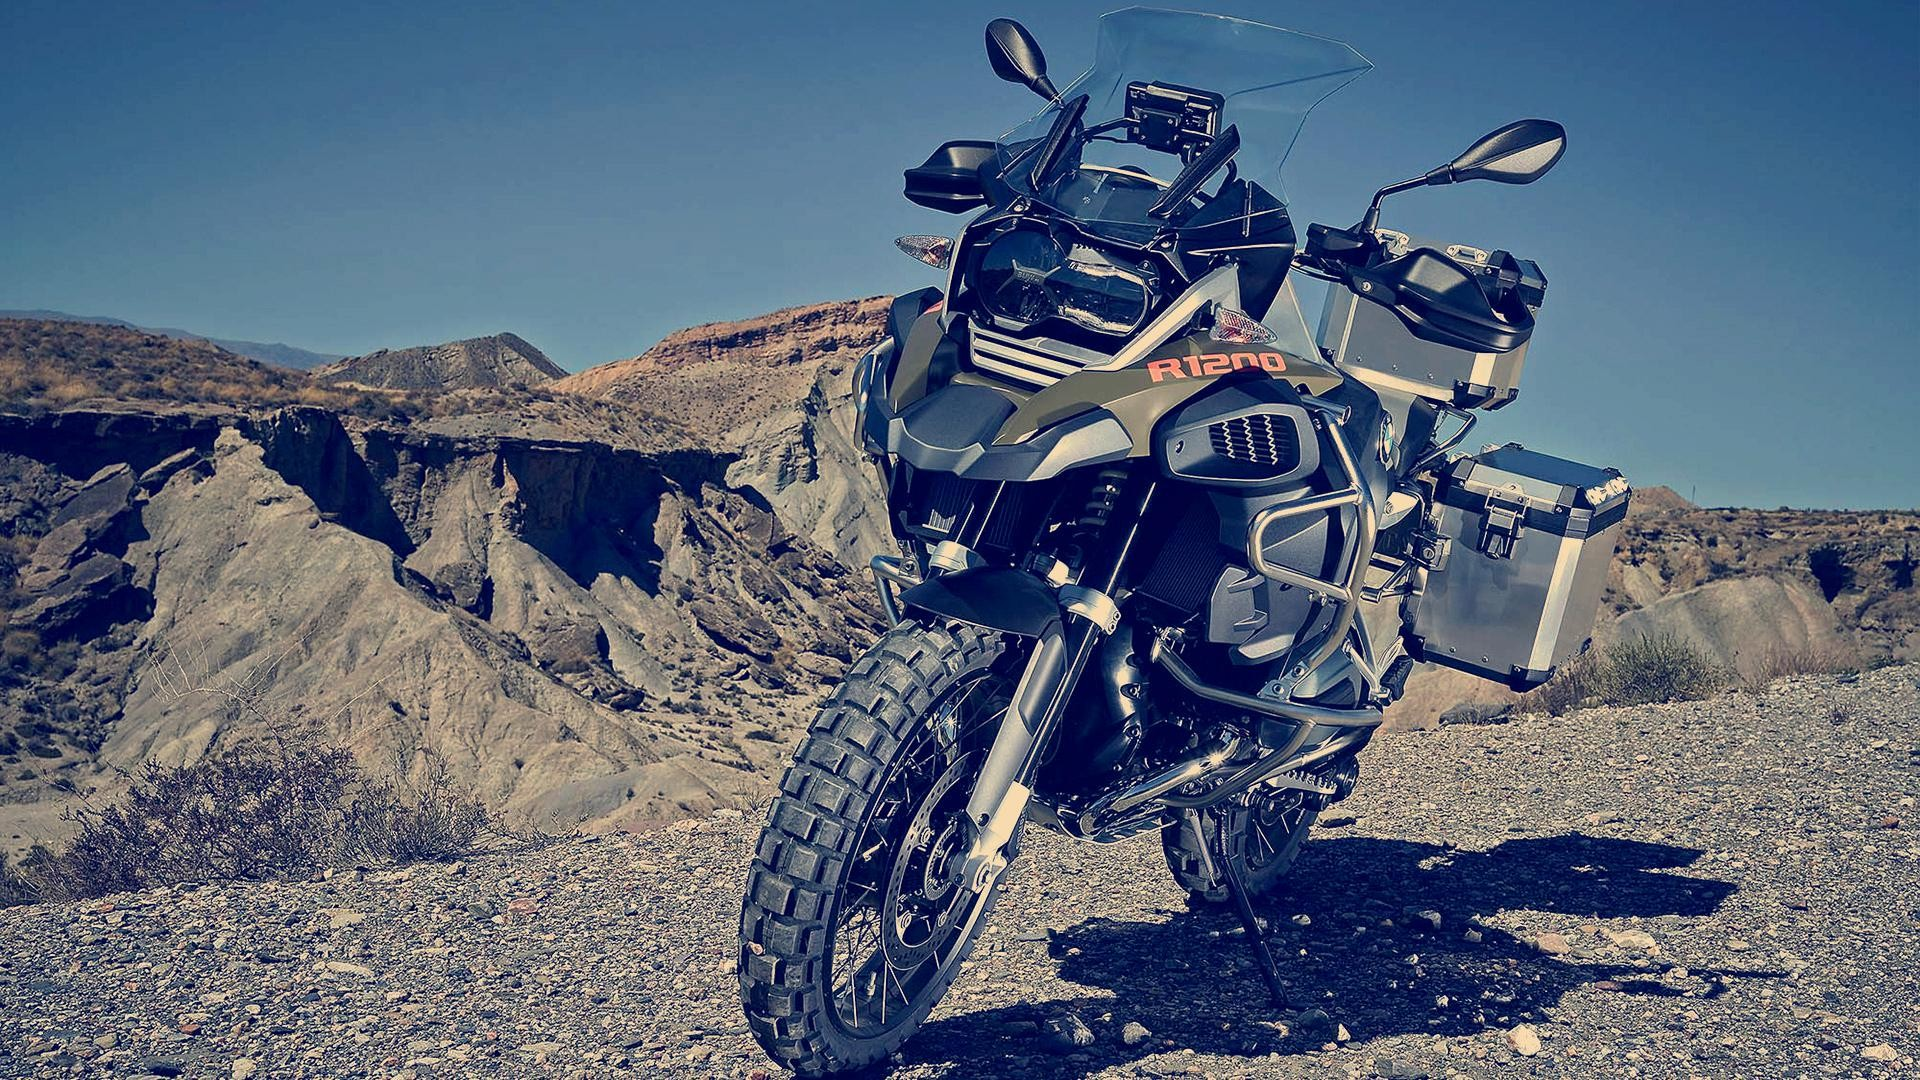 1920x1080 0 2013x1588 r1200gs wallpapers Wallpaper  review 2014 BMW R1200GS  Adventure 2014 BMW R1200GS Adventure .